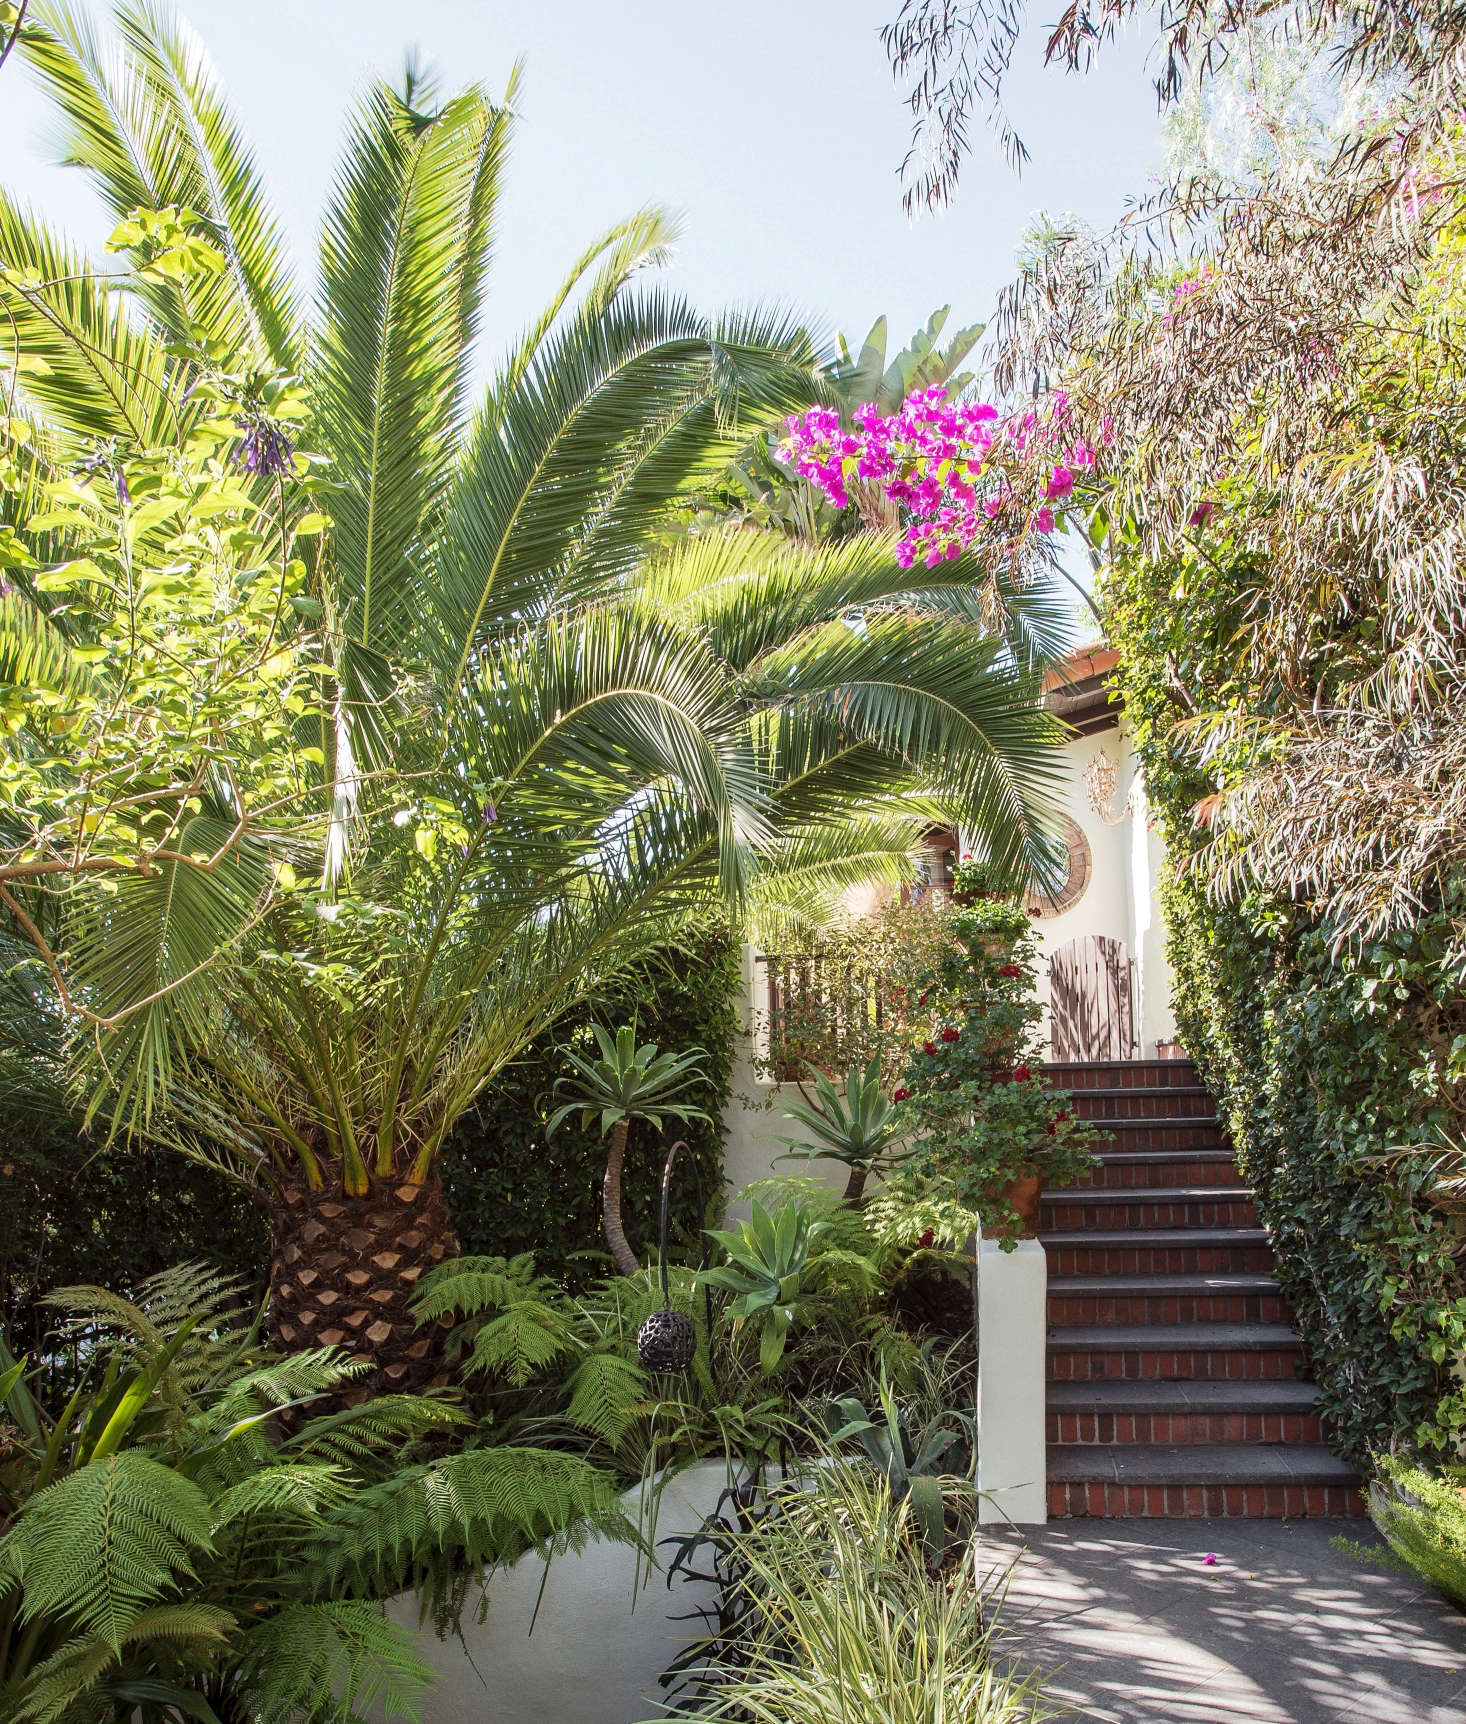 See more of this palm tree and the Los Angeles garden it graces in our book, Gardenista: The Definitive Guide to Stylish Outdoor Spaces. Photograph by Matthew Williams.